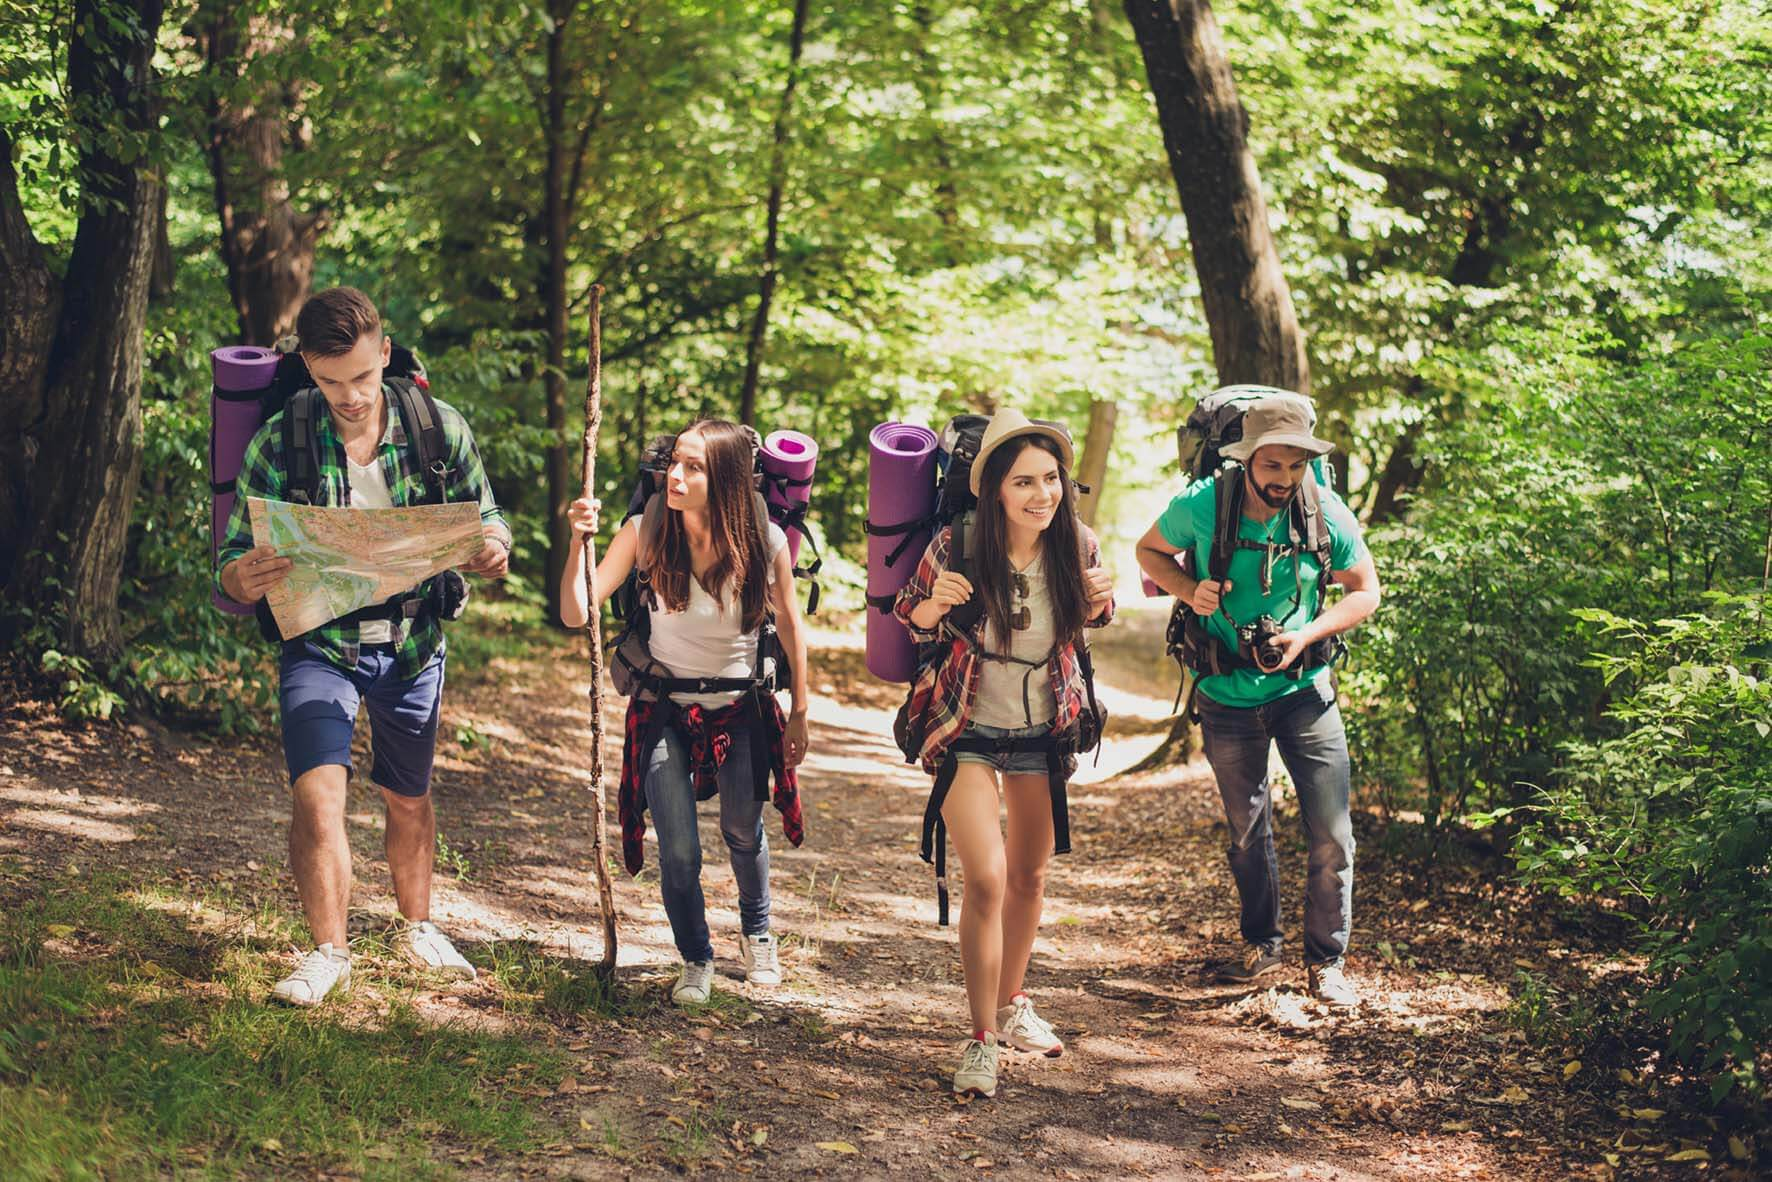 Young people on a hike